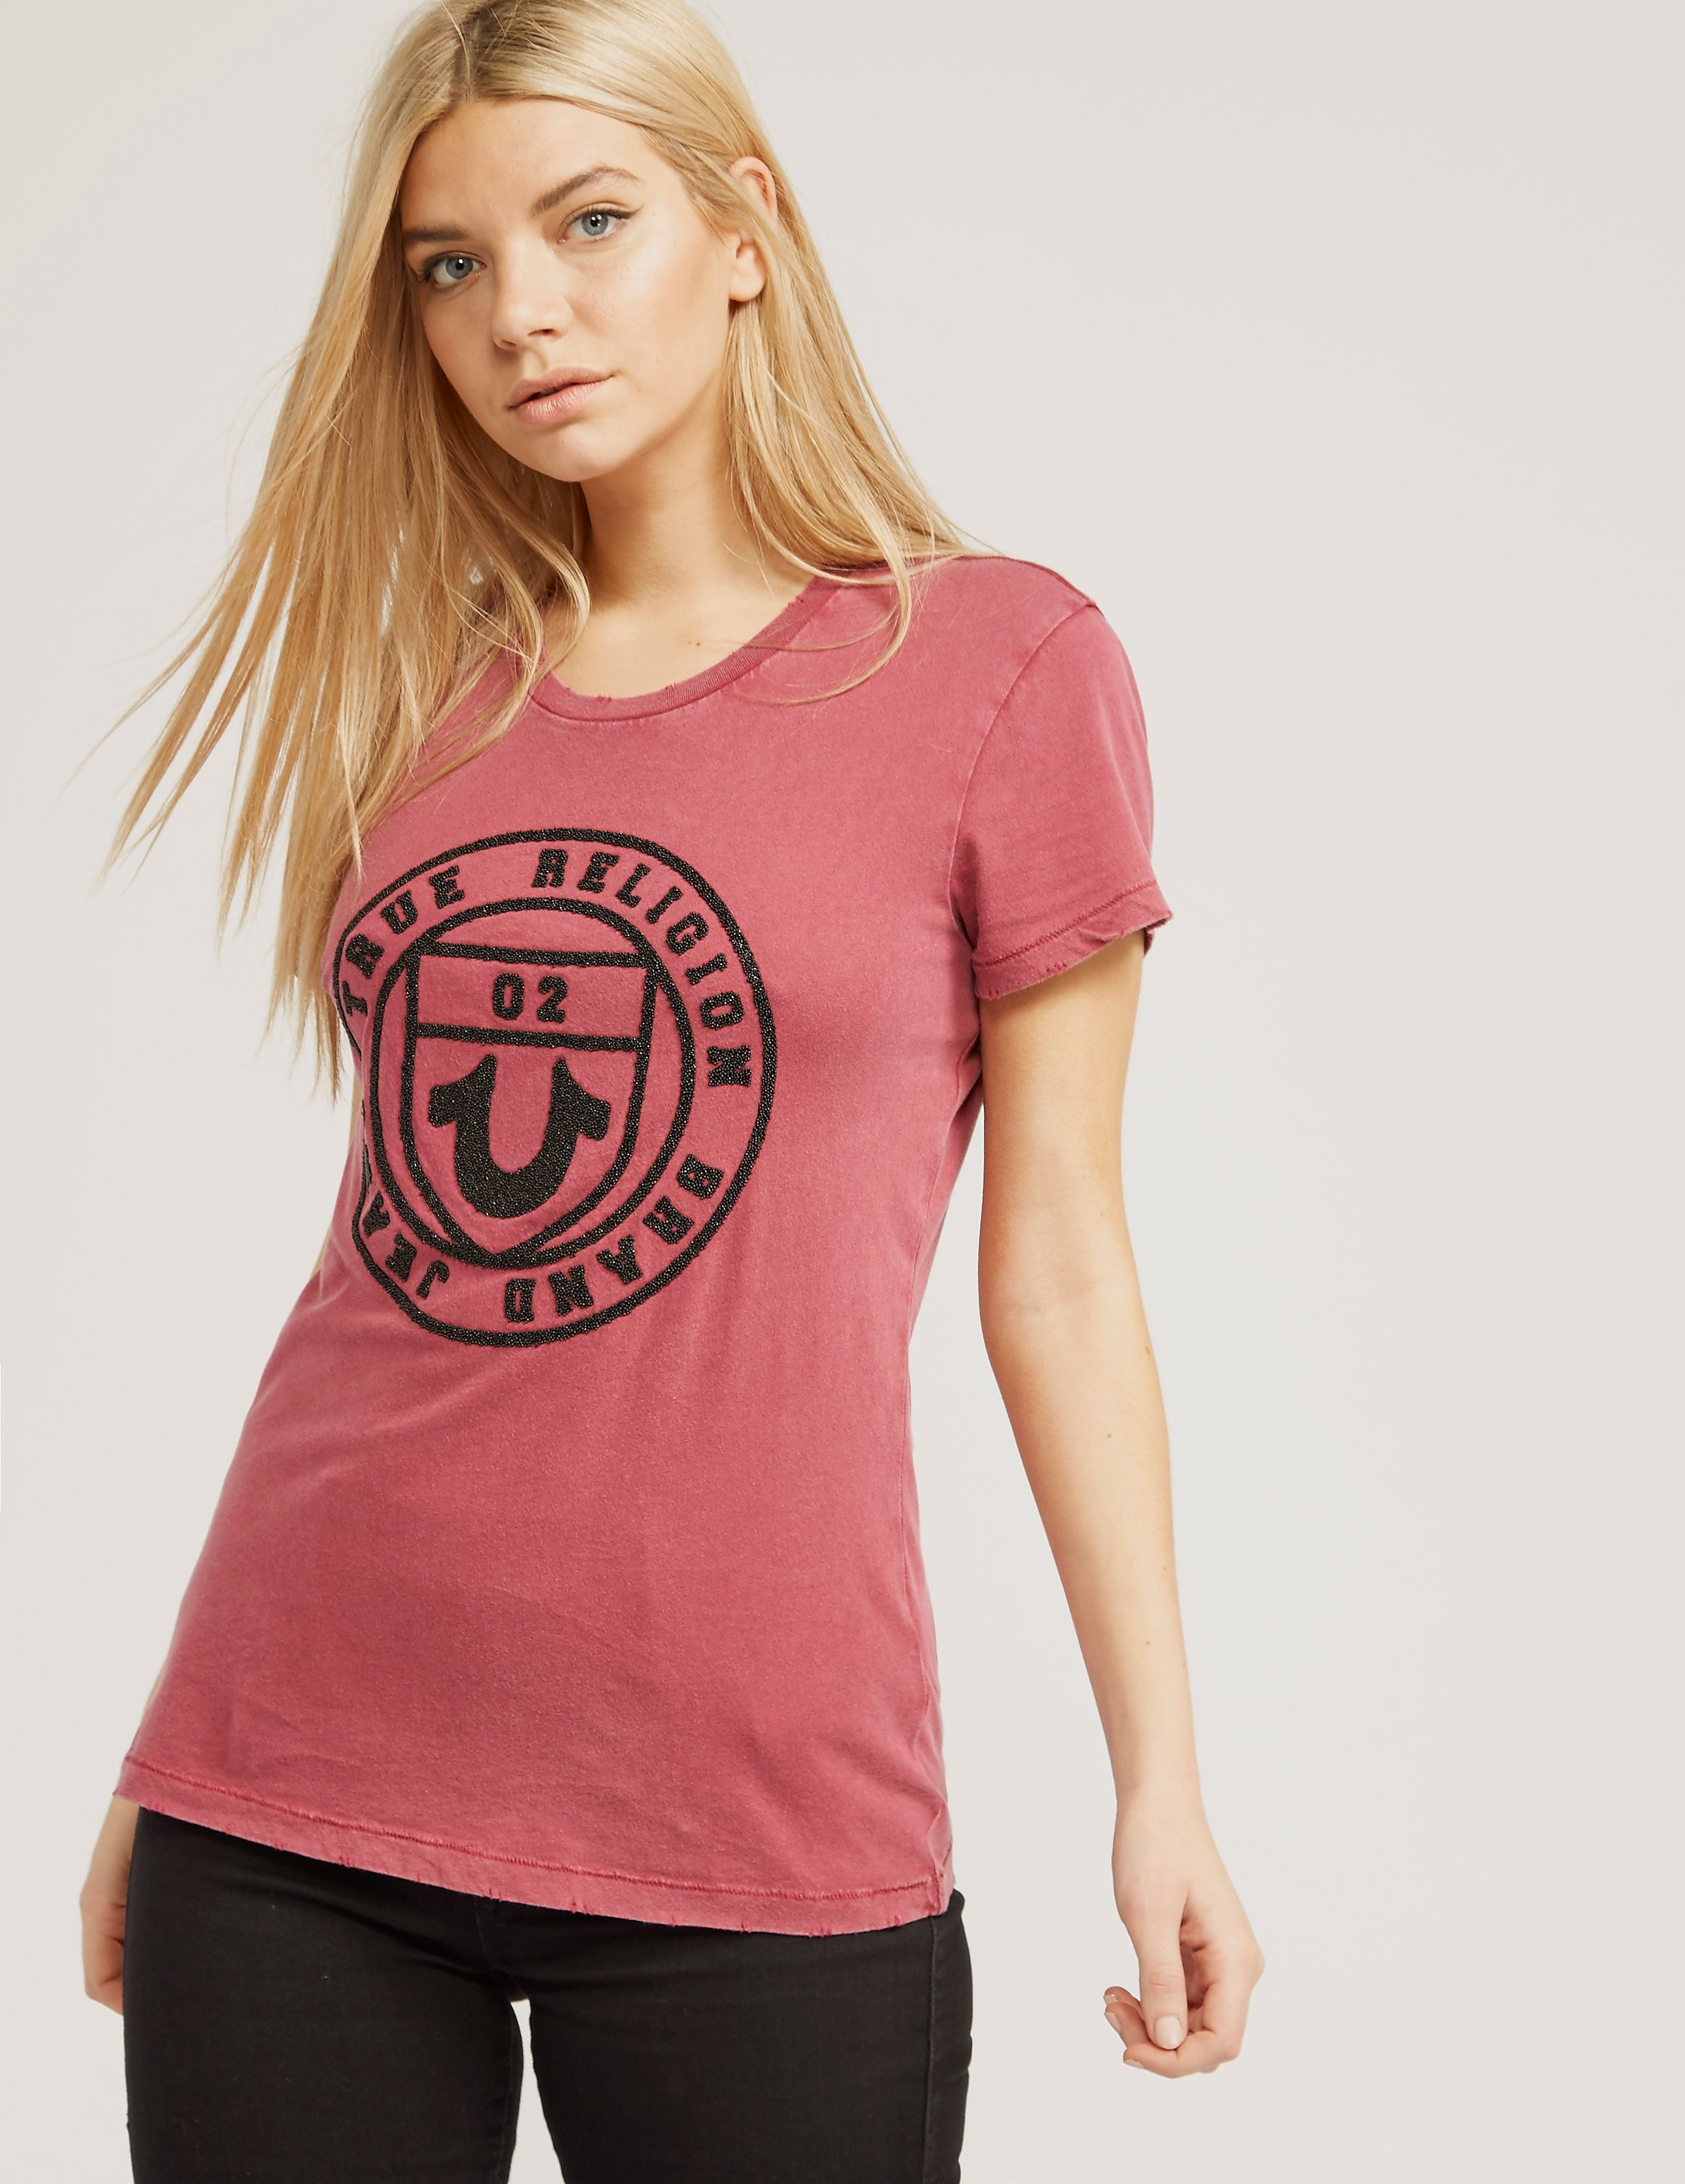 True Religion Caviar Bead Short Sleeve T-Shirt